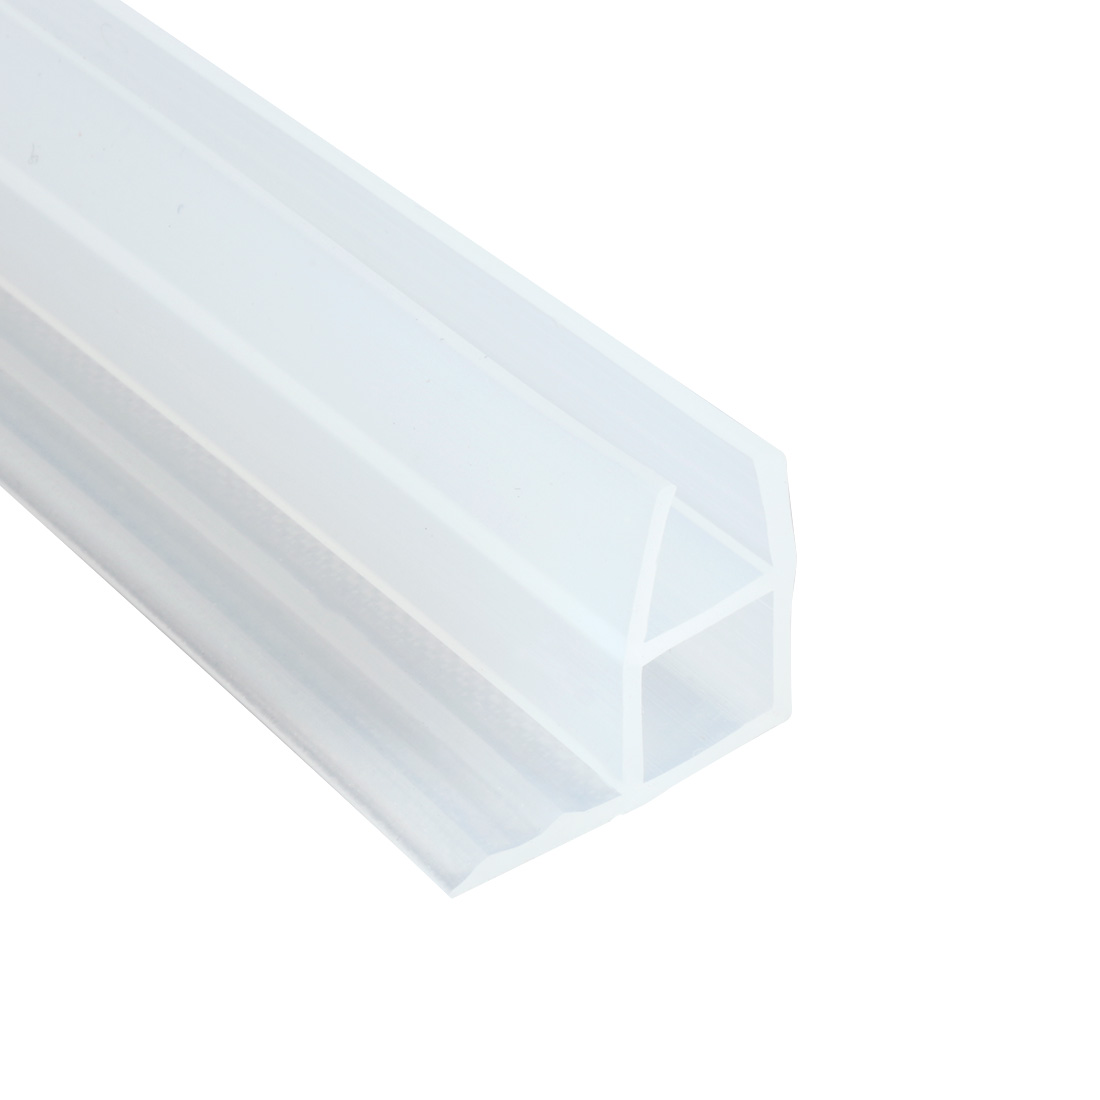 1M 39-inch Frameless Window Shower Door Seal Clear for 8mm 5/16-inch Glass